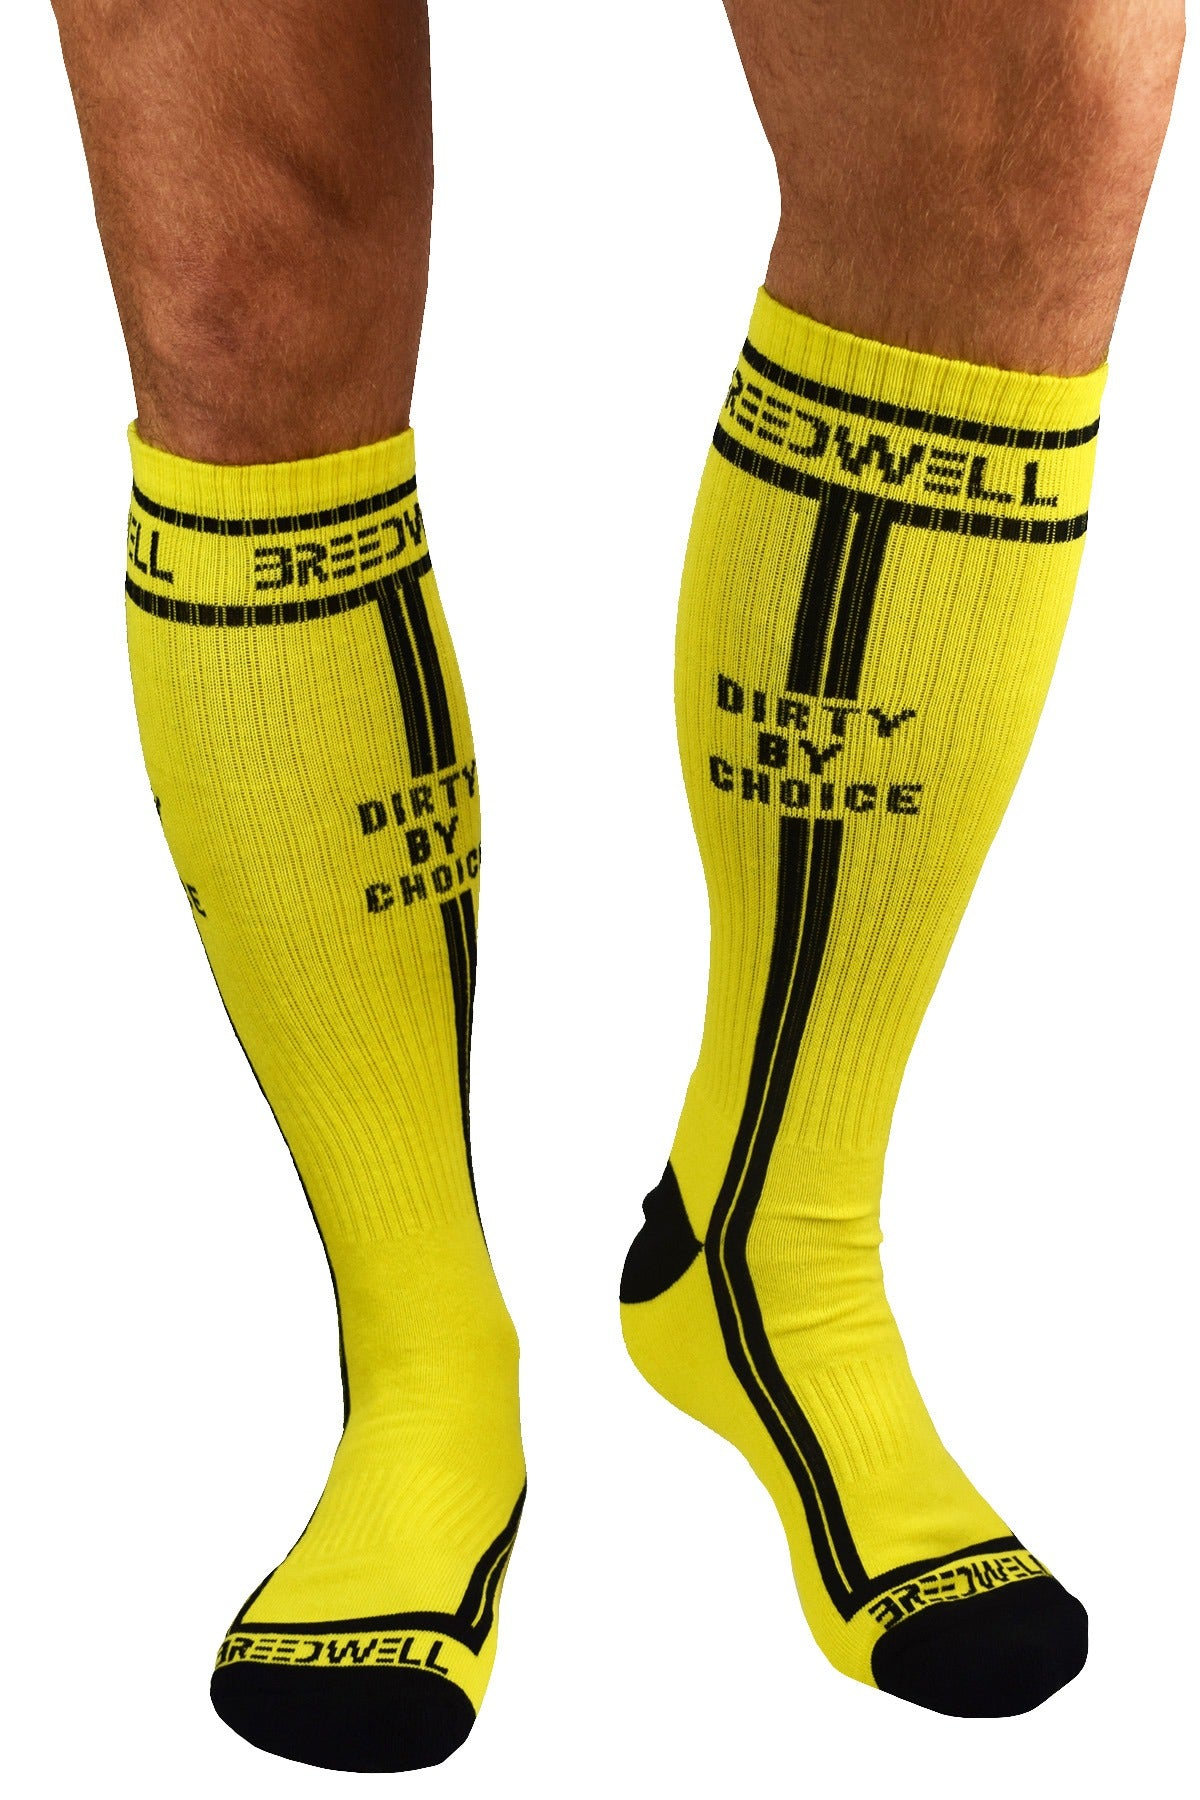 Breedwell Yellow 'Dirty by Choice' Socks